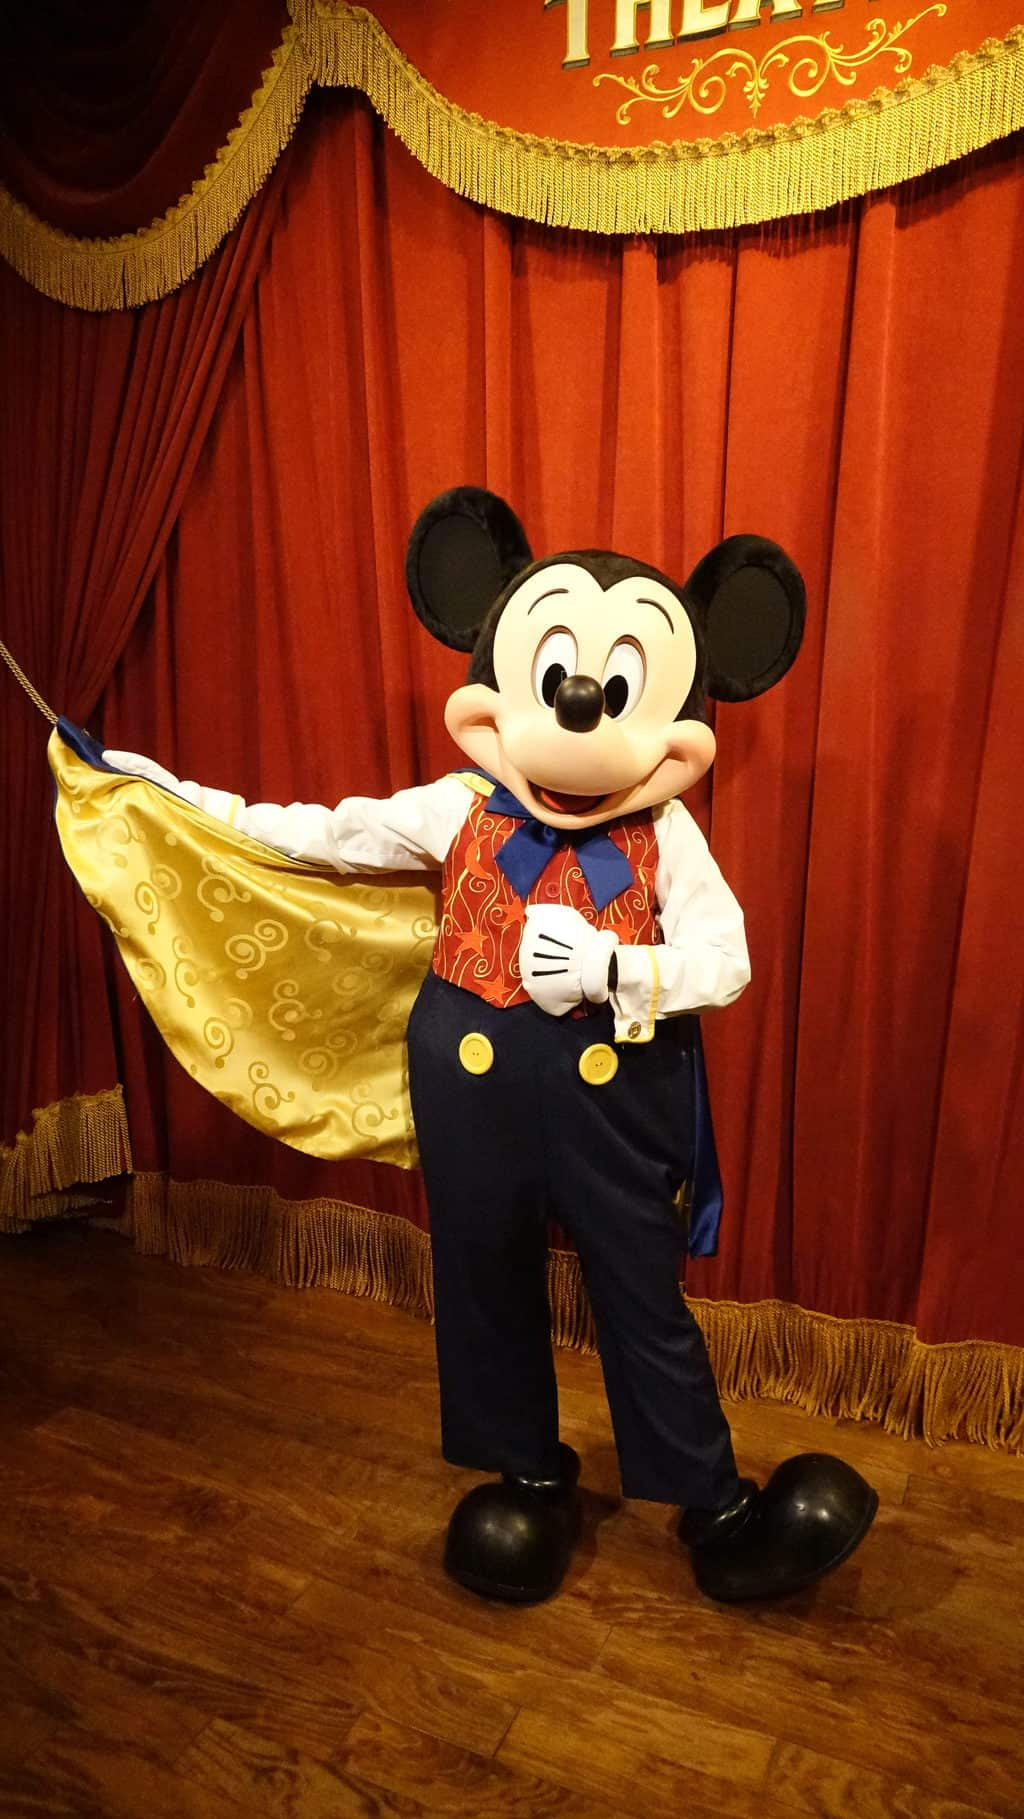 Mickey mouse updated his look at the magic kingdom kennythepirate mickey mouse updates his look at magic kingdom 2 m4hsunfo